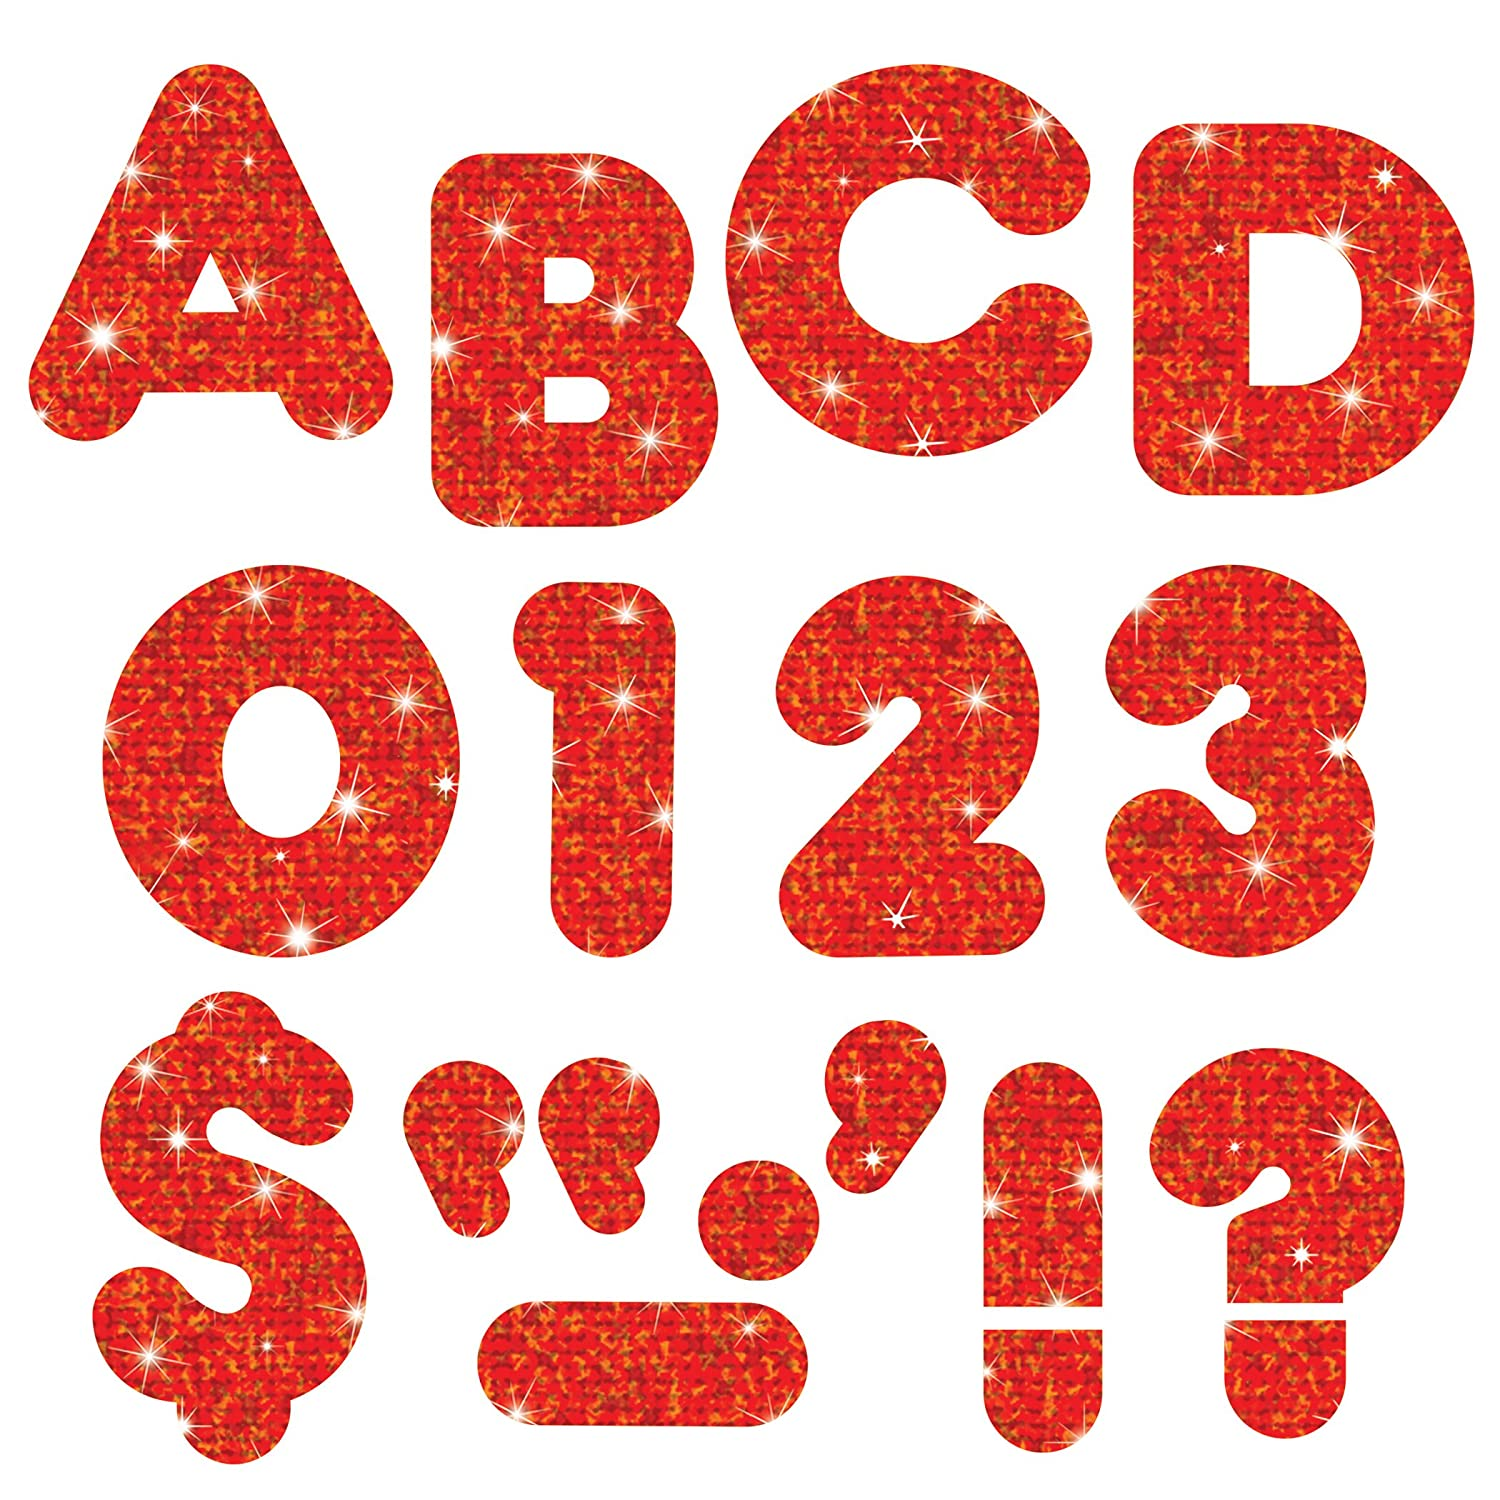 140 Classroom display board ready letters Sparkle Red 2